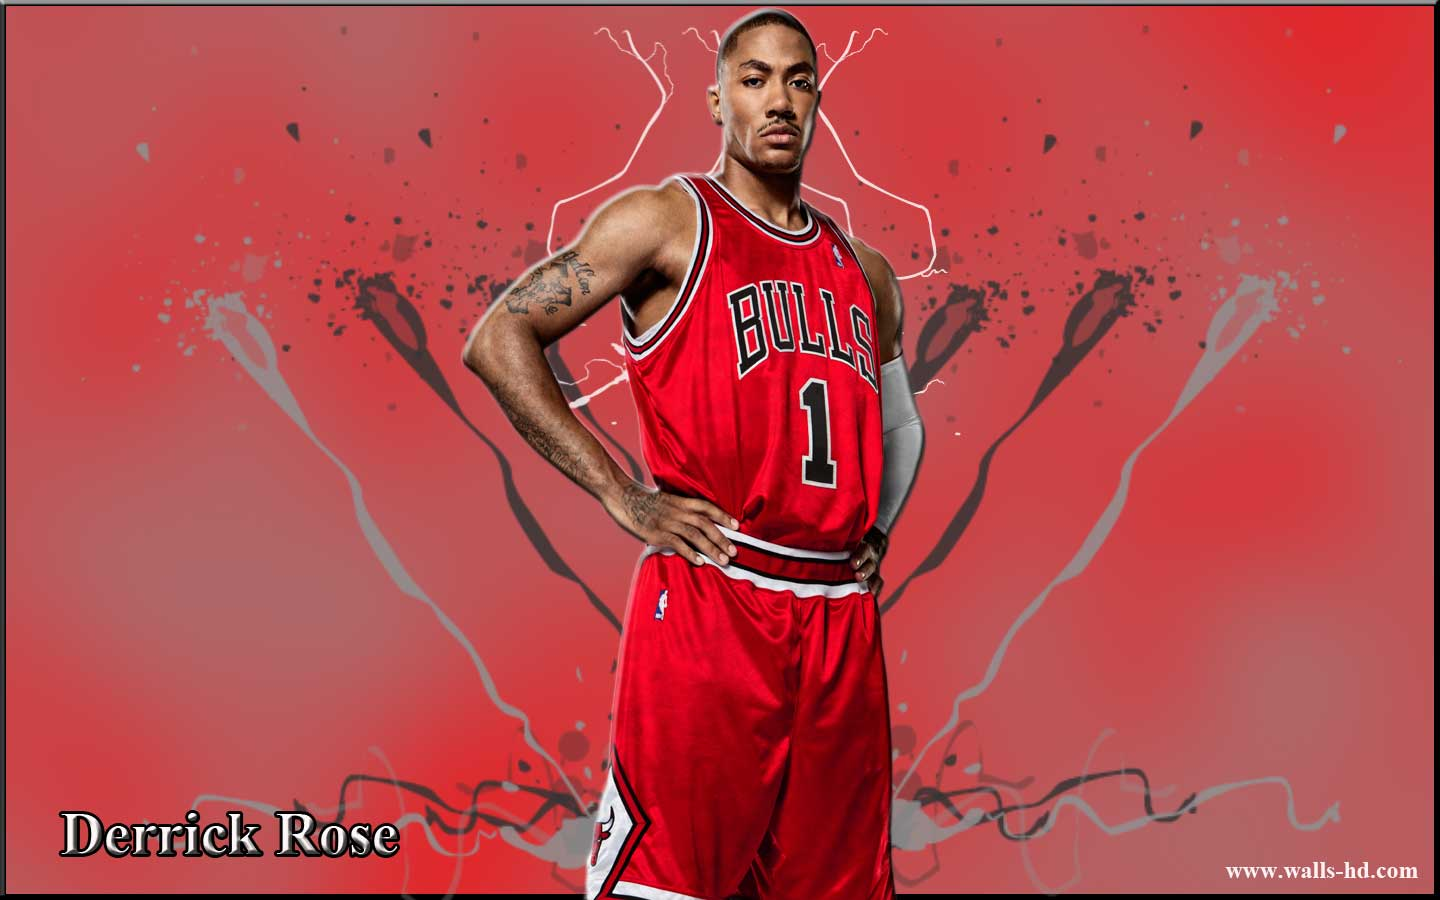 Derrick Rose Chicago Bulls Wallpaper Derrick Rose Chicago Bulls 1440x900